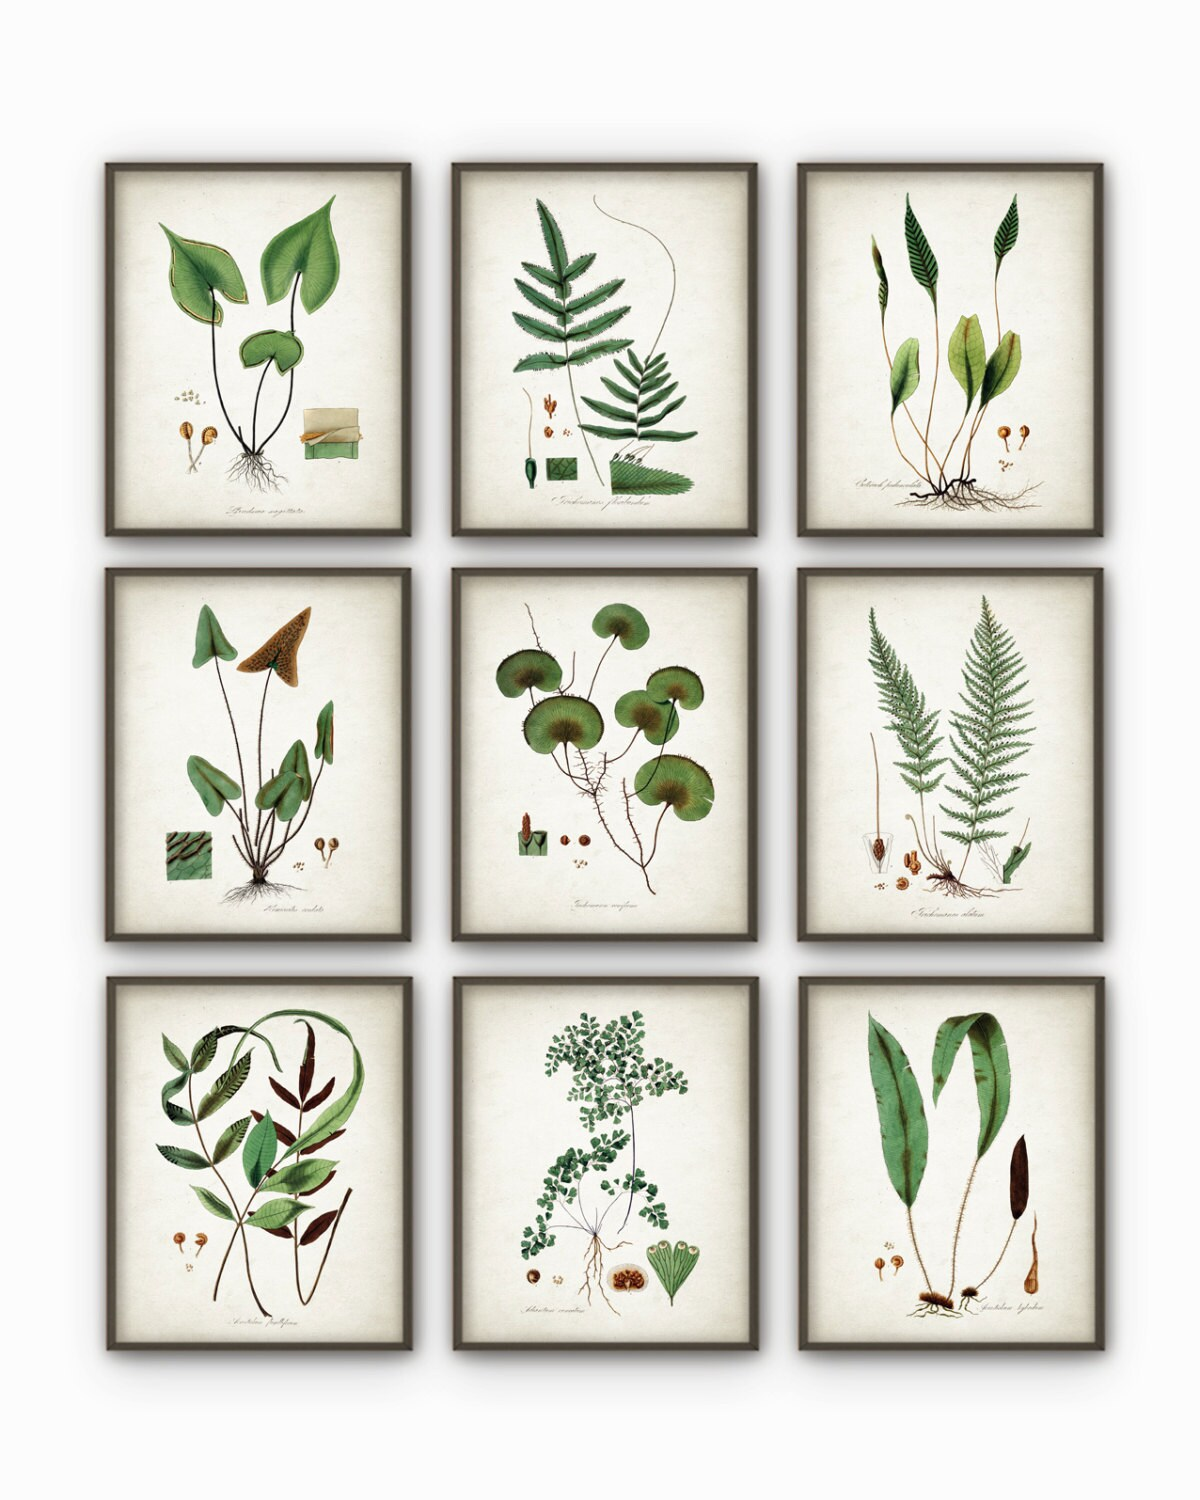 Green Plant Wall Decor Set Of 9 Botanical Art Posters